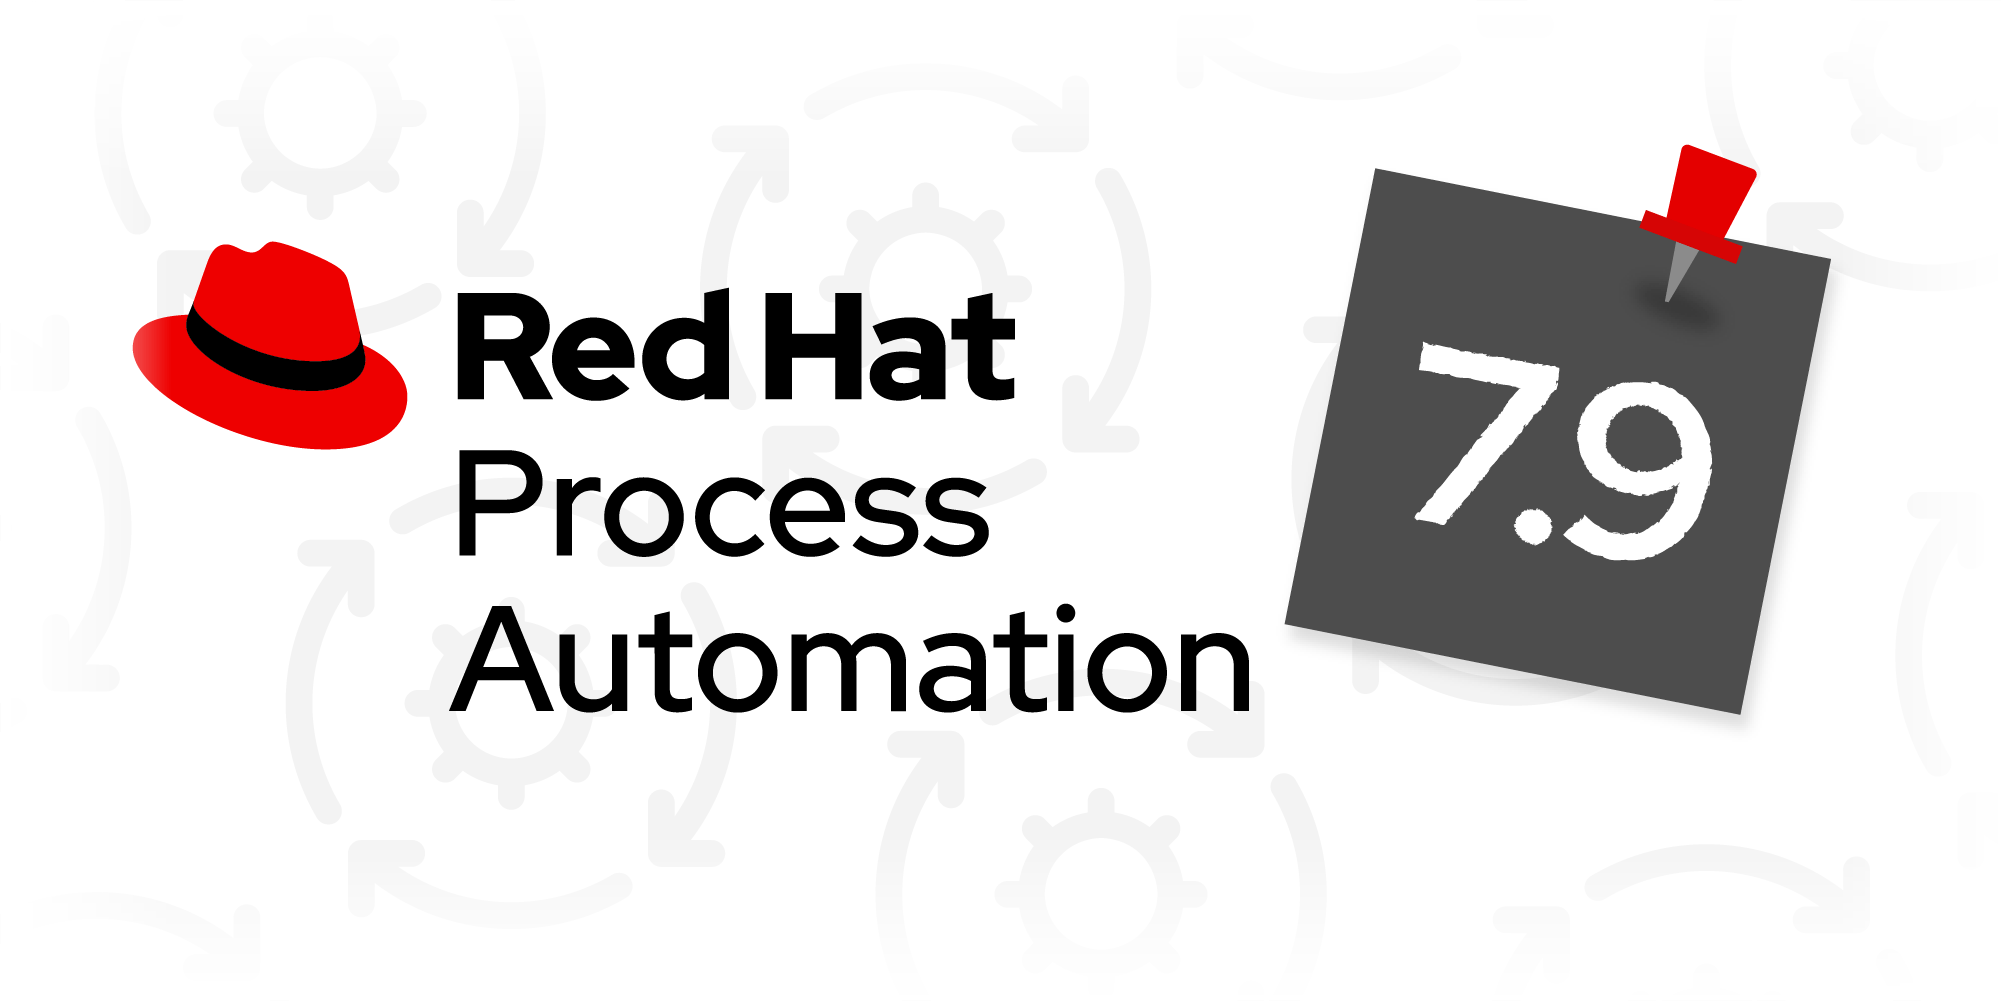 Red Hat Process Automation Manager 7.9 brings Apache Kafka integration and more